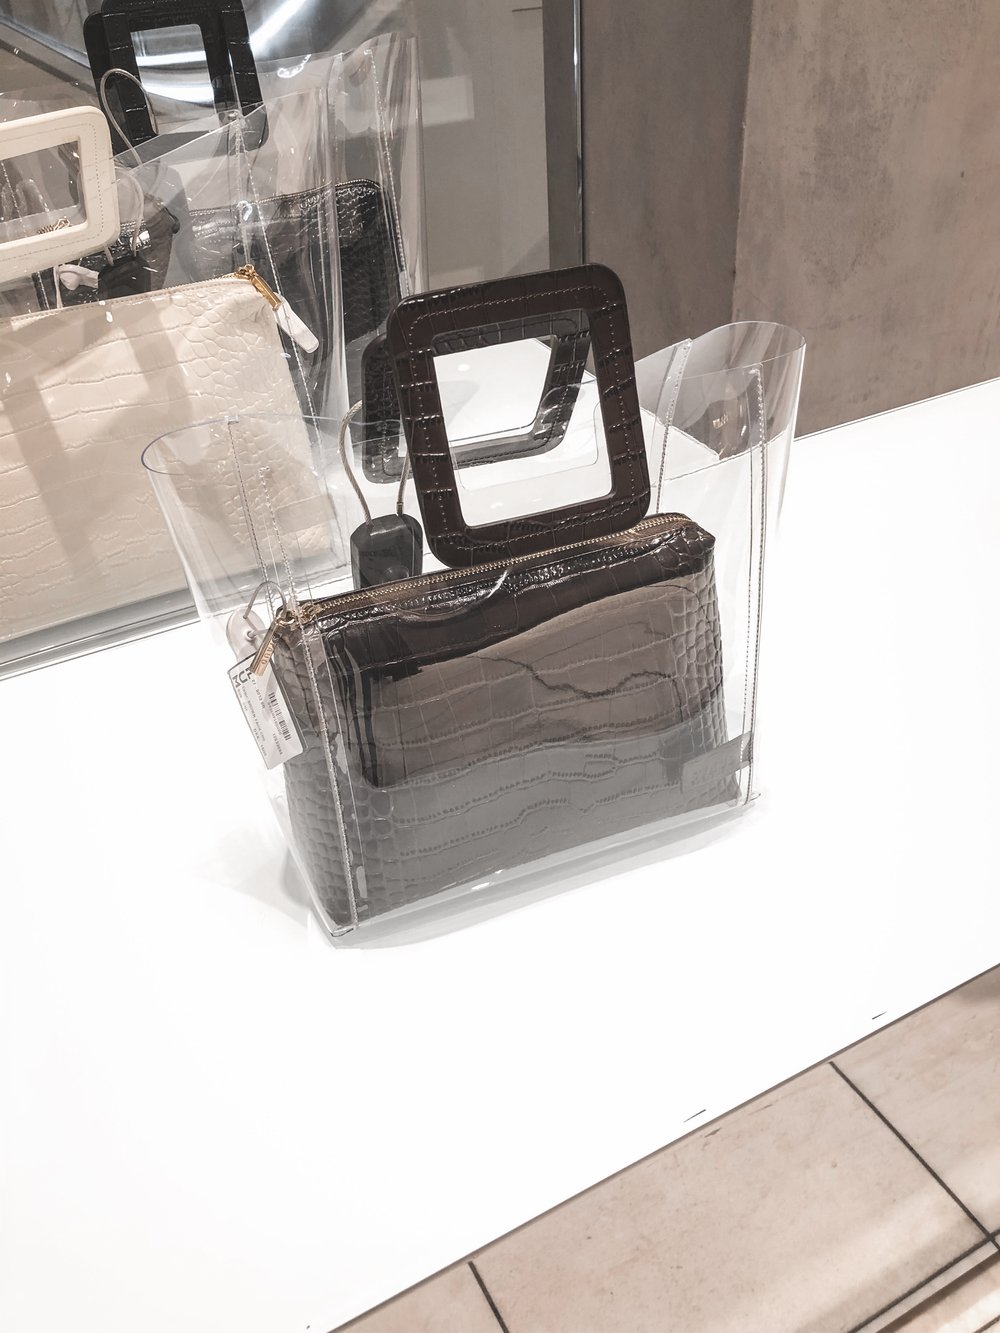 Perspex Bags - The one in the picture is from Staud but there's many other brands to choose from - I saw these types of bags everywhere in Copenhagen.